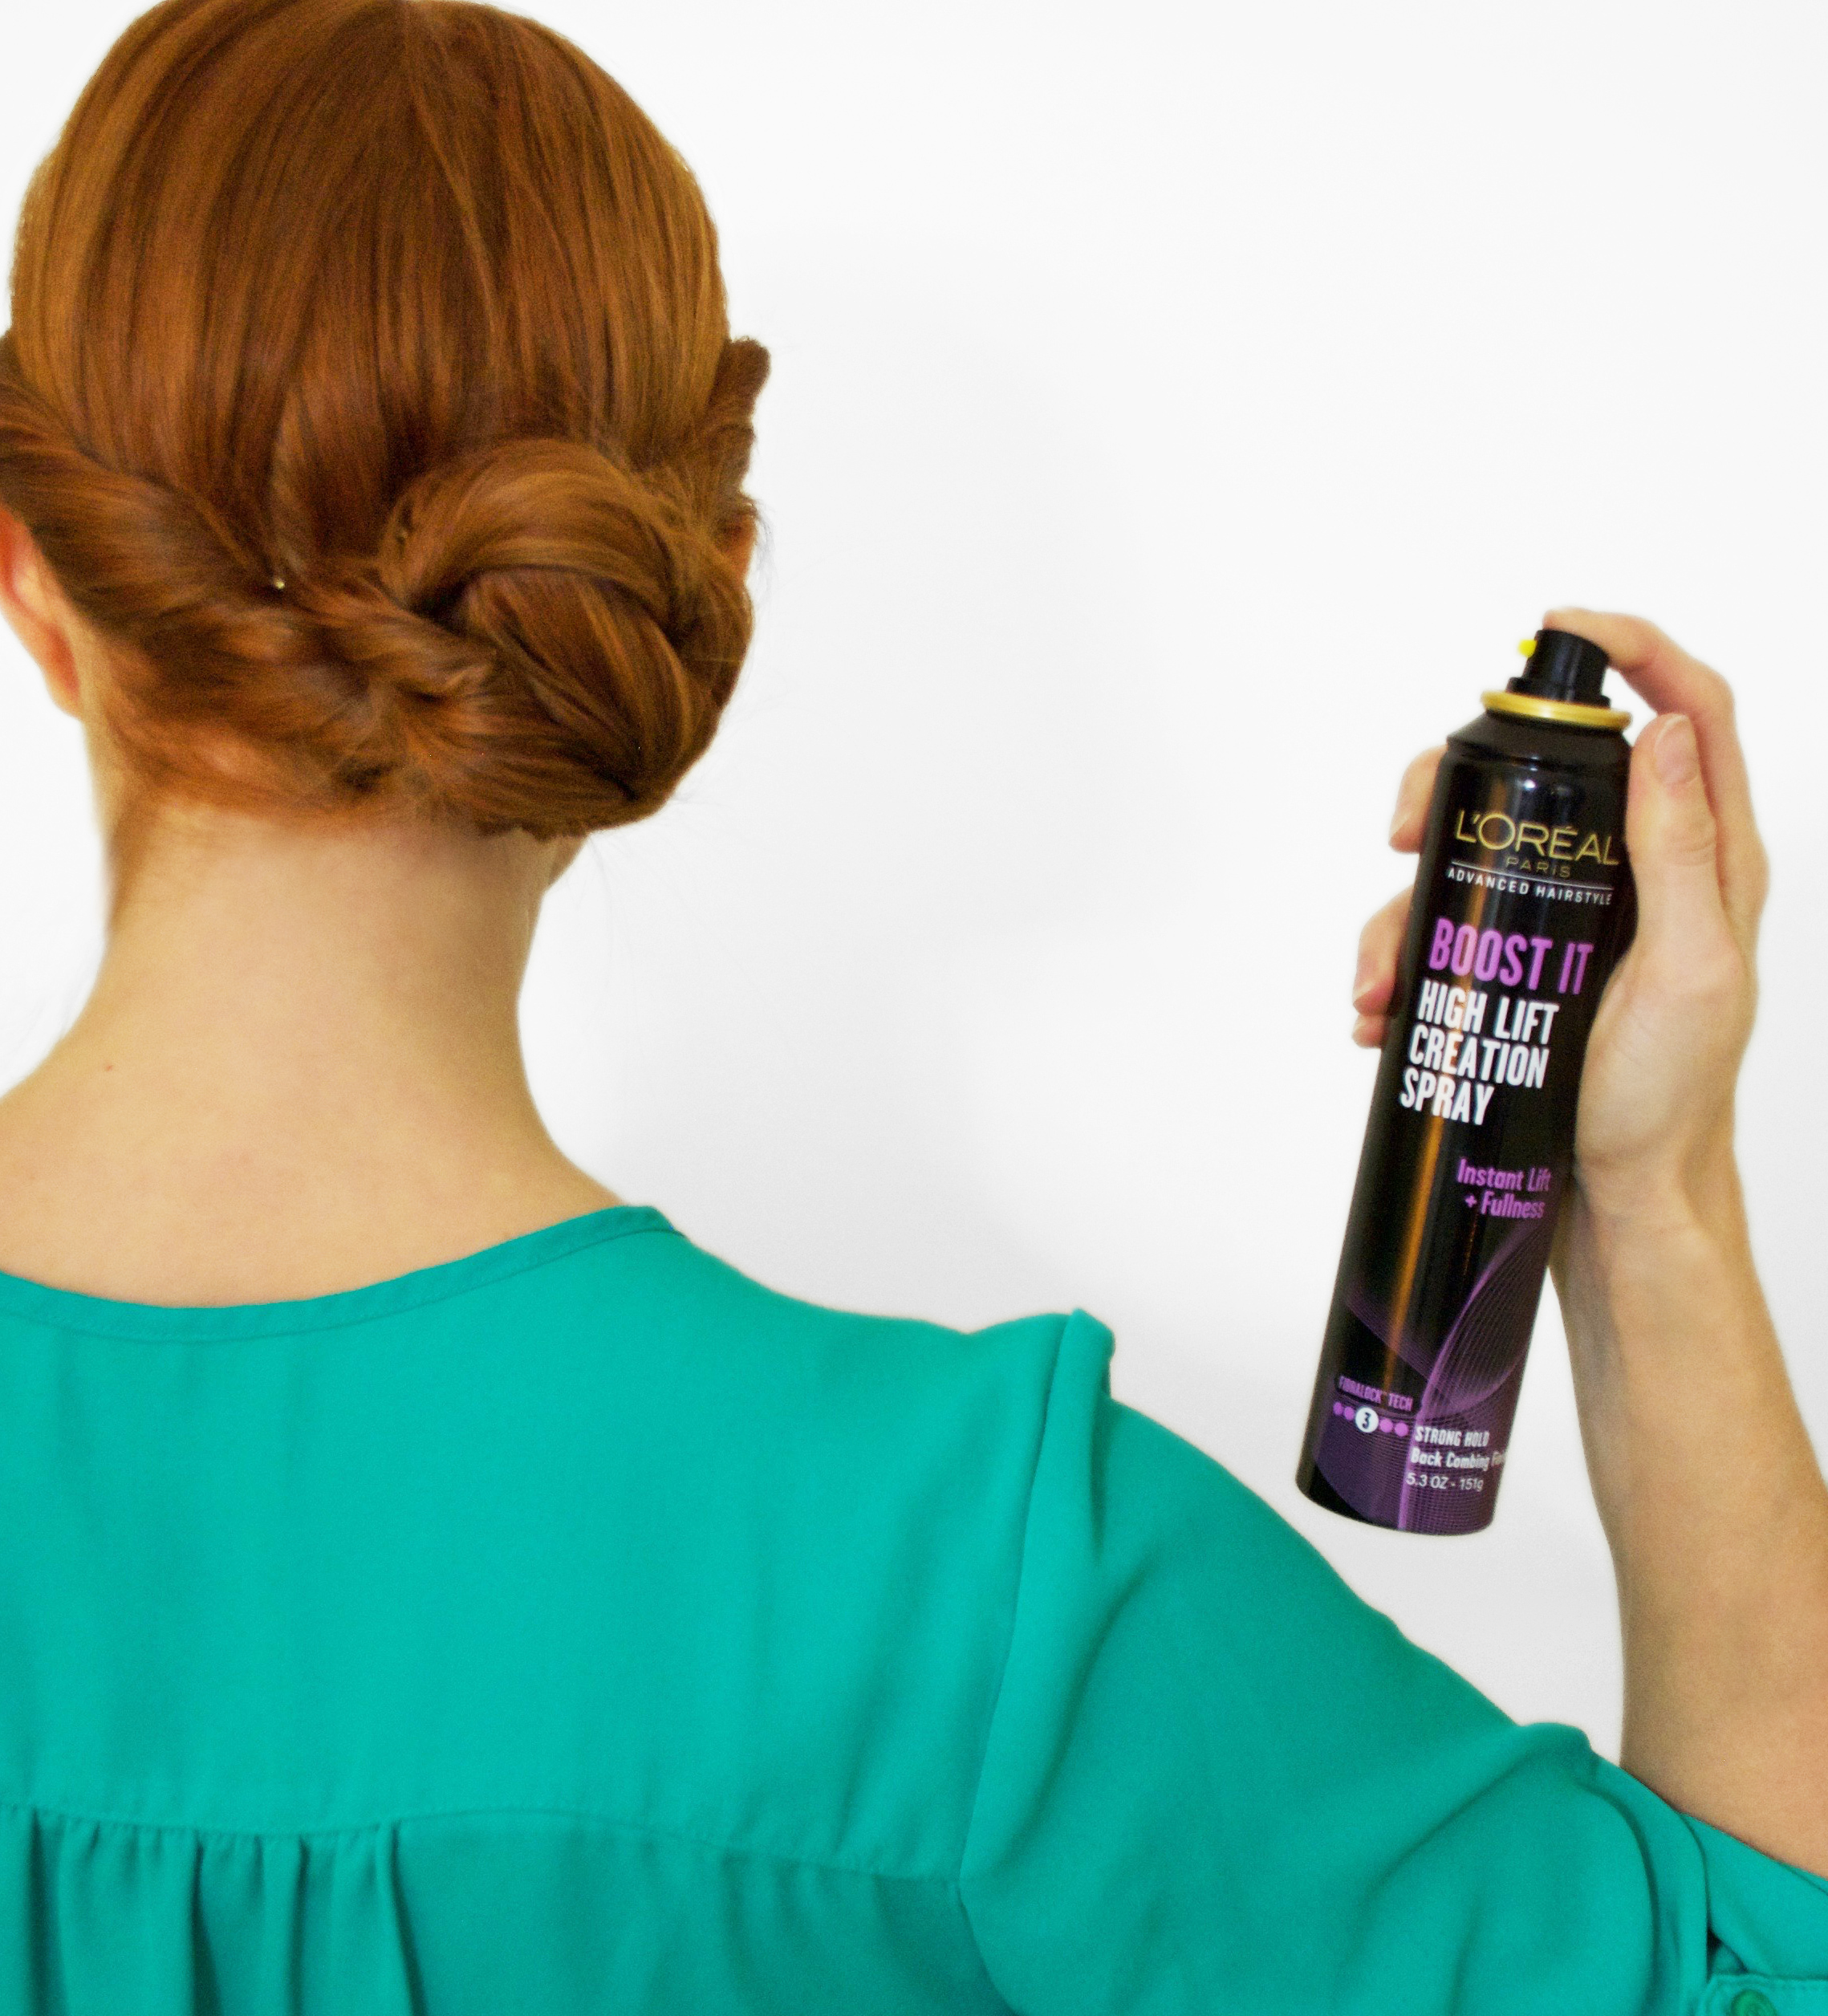 Redheaded girl using Loreal Boost It spray